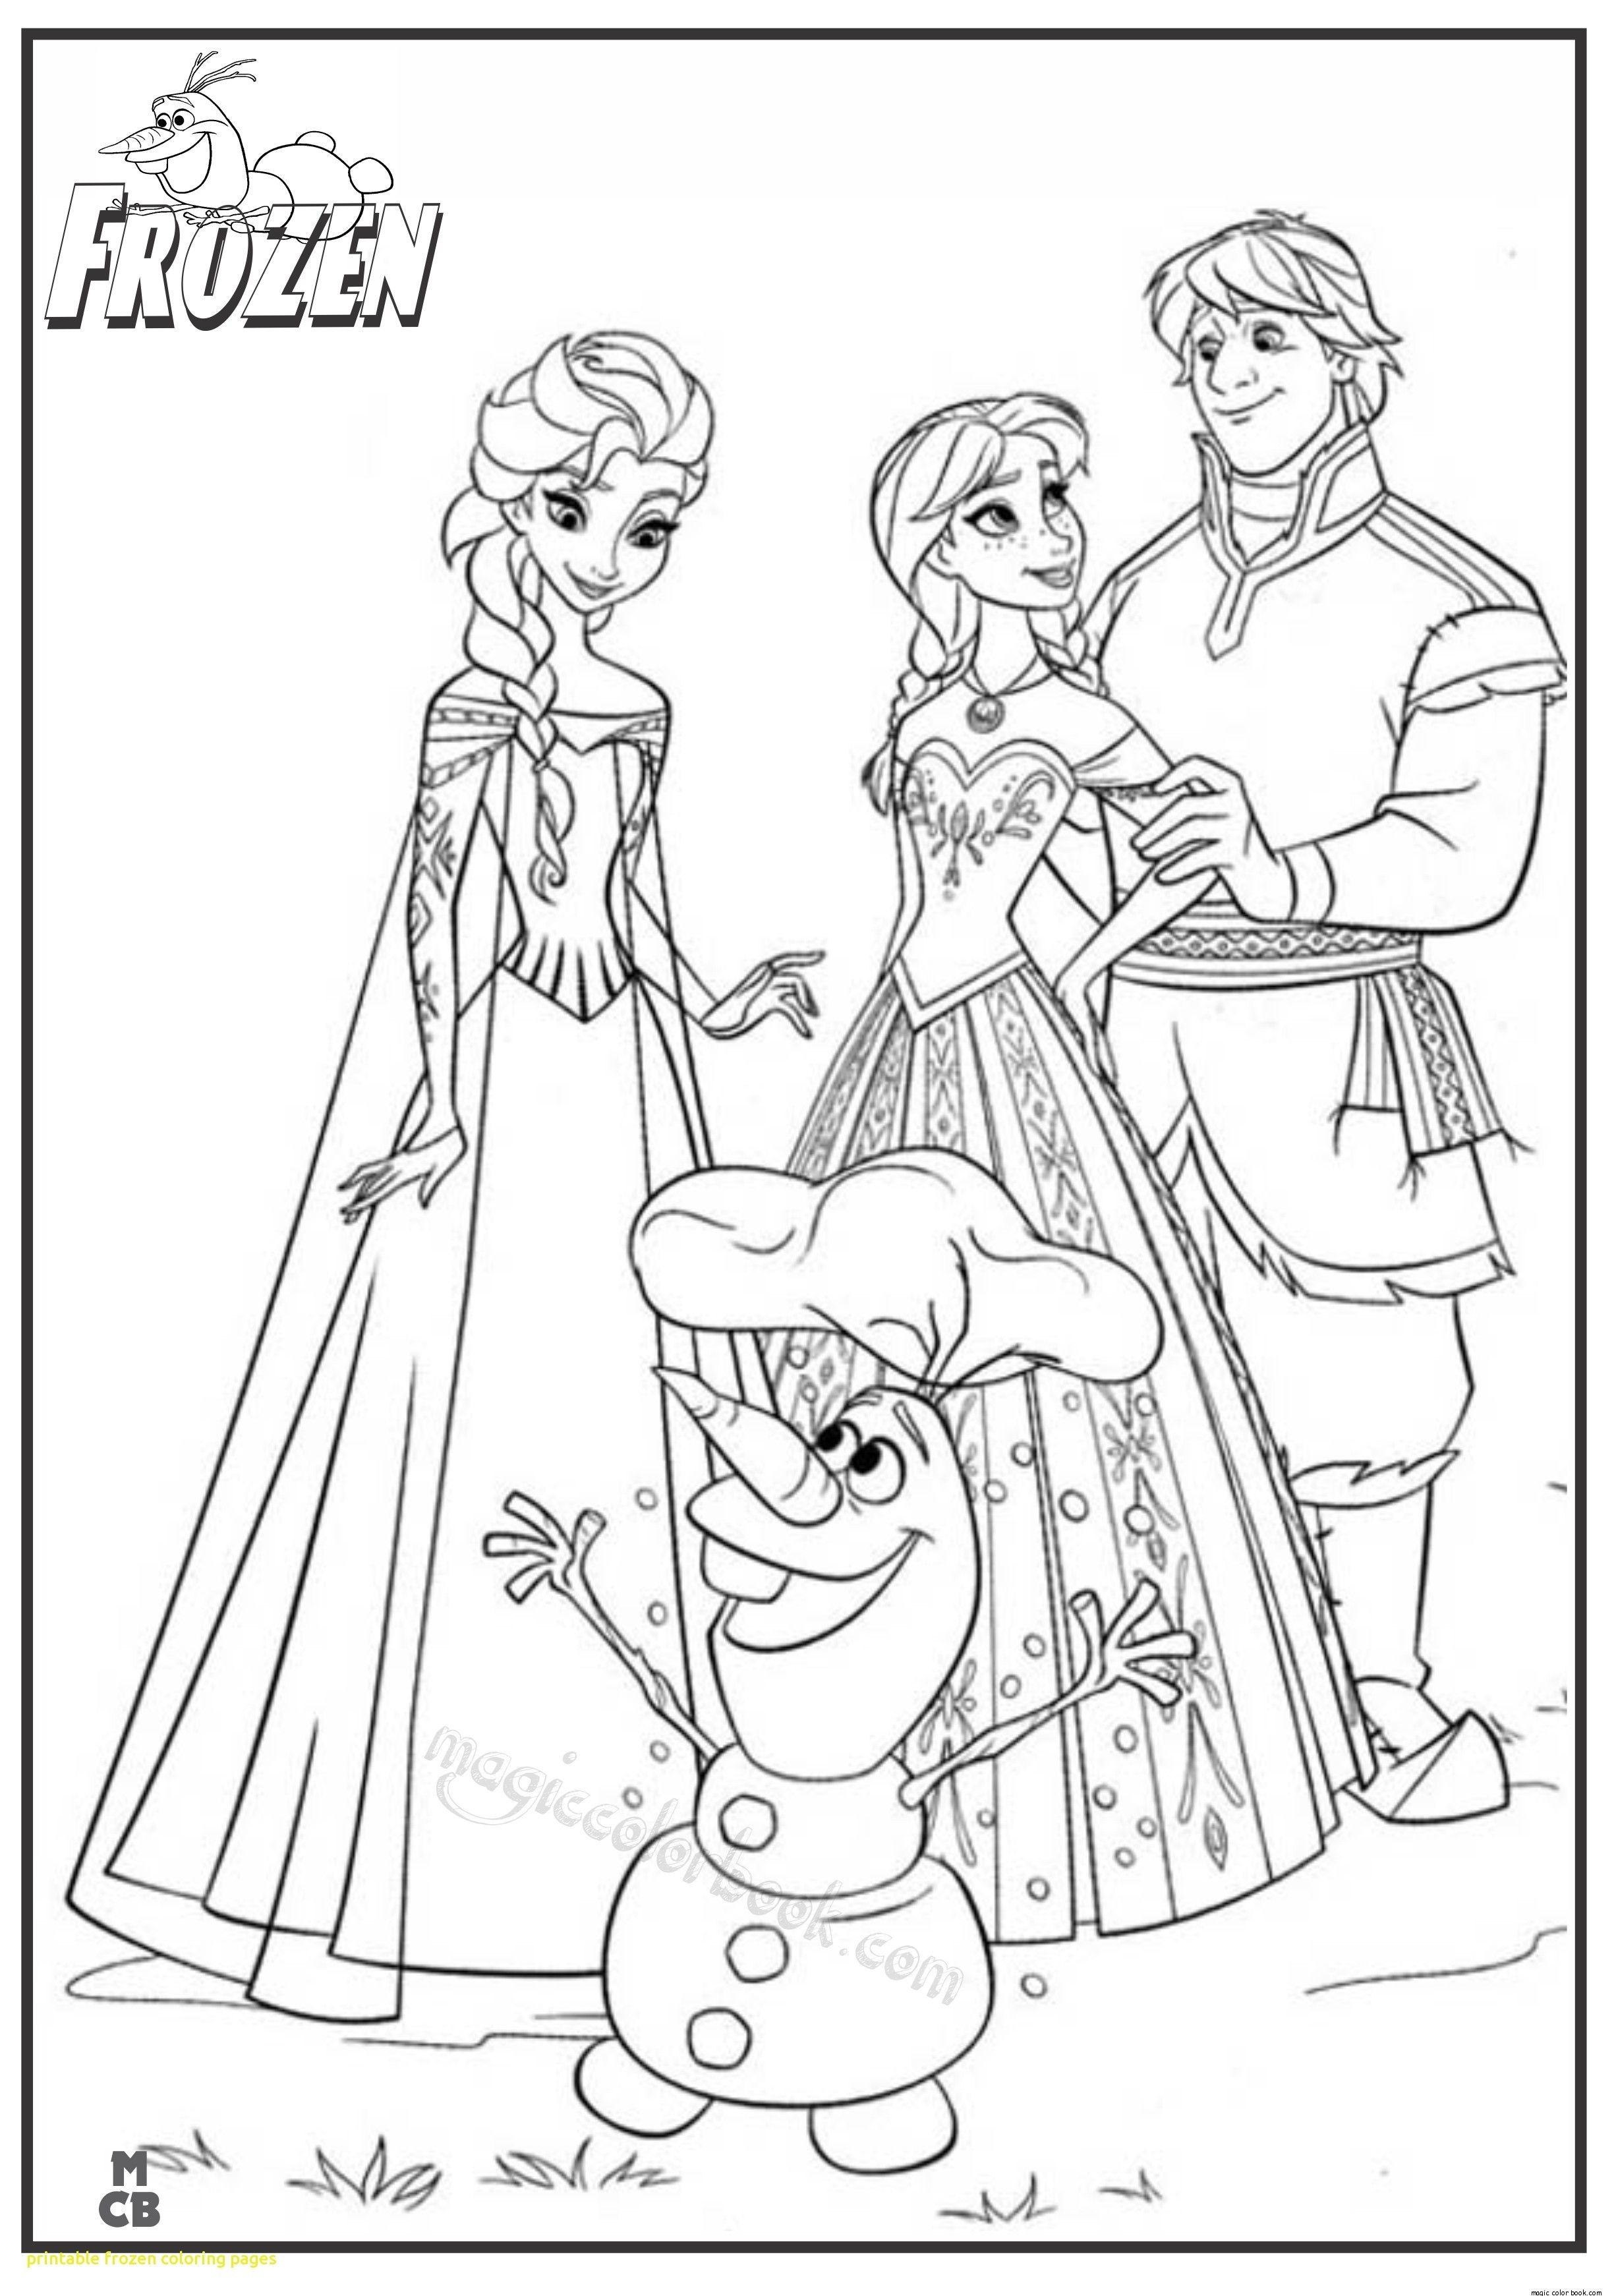 Awesome Frozen Coloring Pages Kristoff | Jvzooreview - Free Printable Frozen Coloring Pages